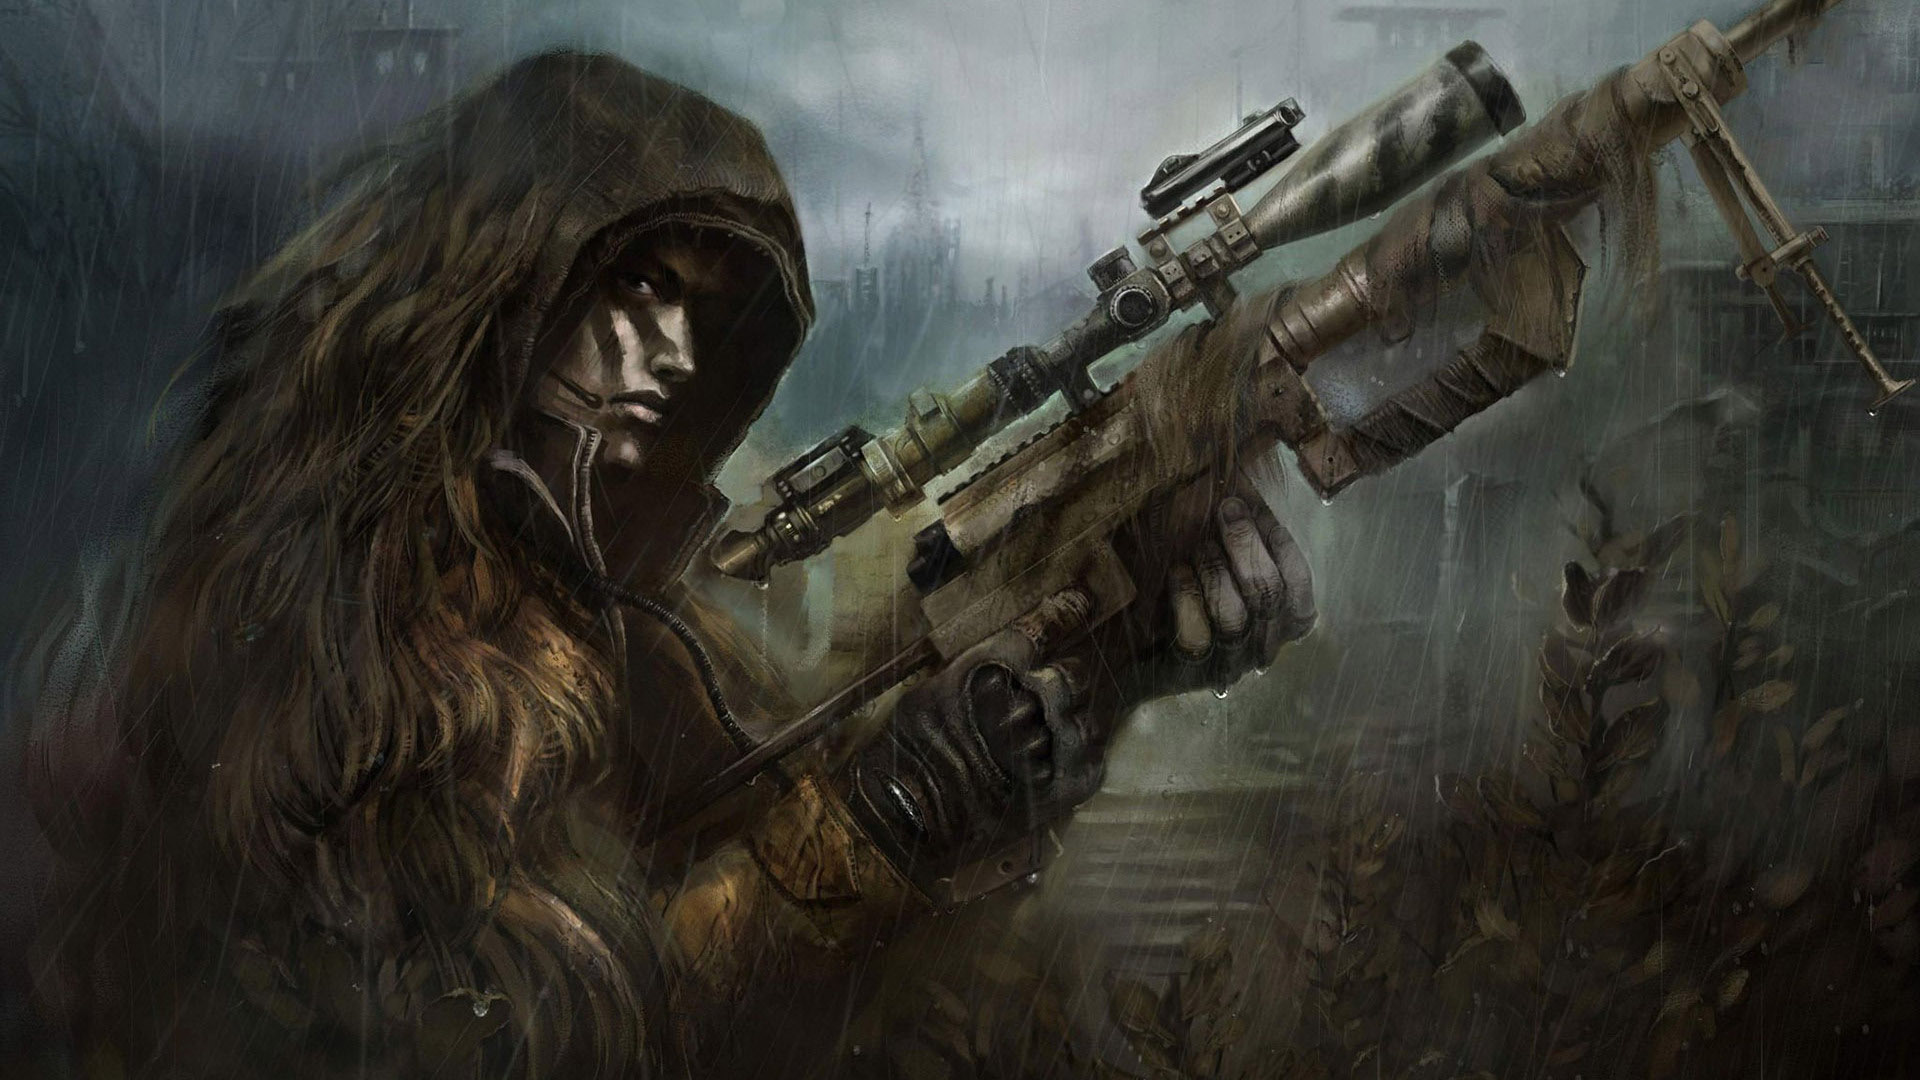 sniper-ghost-warrior-rifle-heavy-rain-forest-camouflage-pic